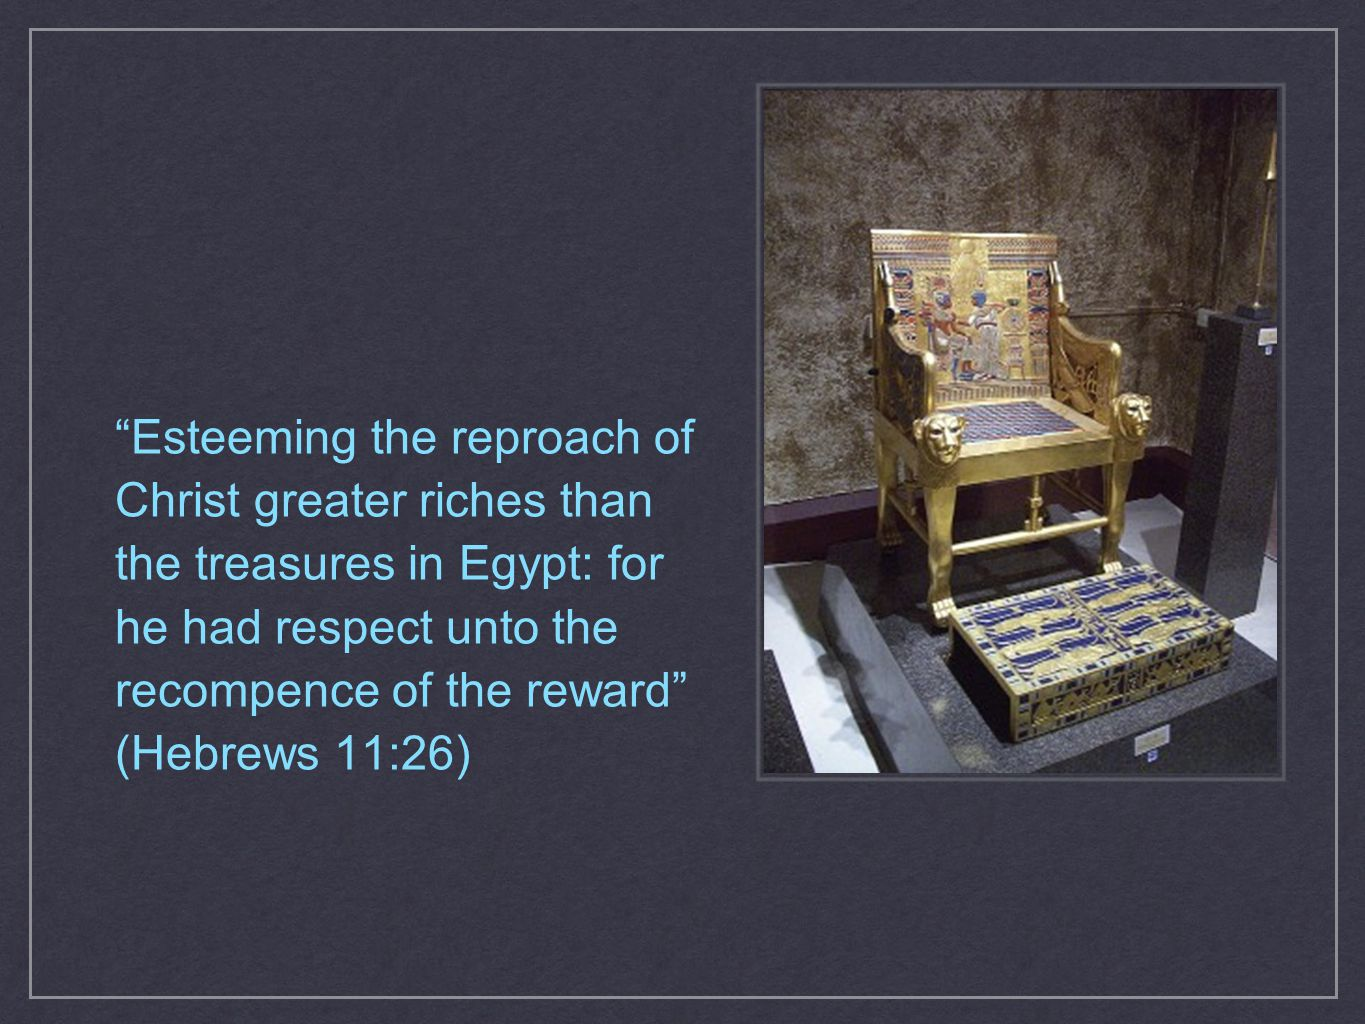 Esteeming the reproach of Christ greater riches than the treasures in Egypt: for he had respect unto the recompence of the reward (Hebrews 11:26)